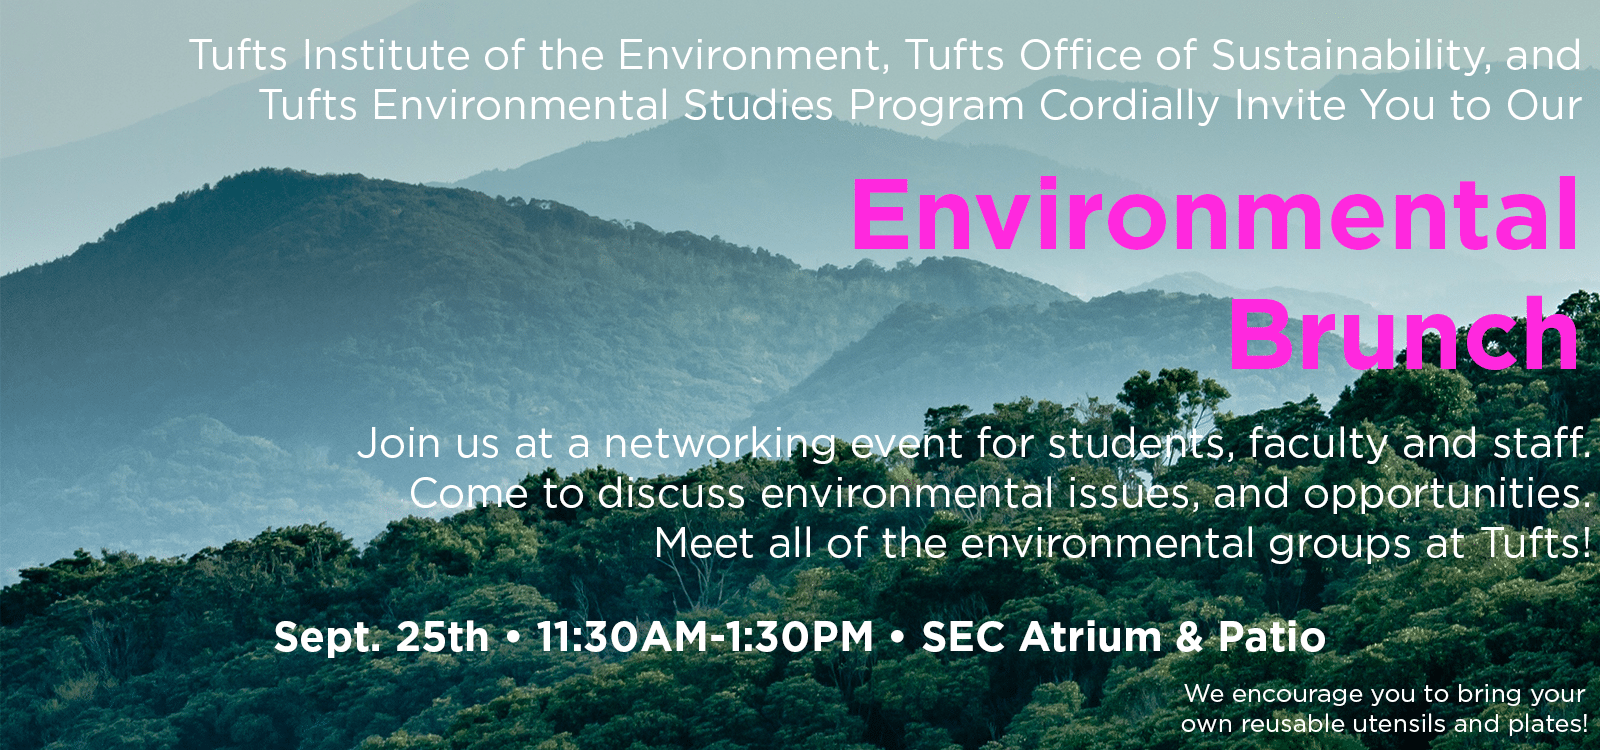 Join us at the Environmental Brunch!